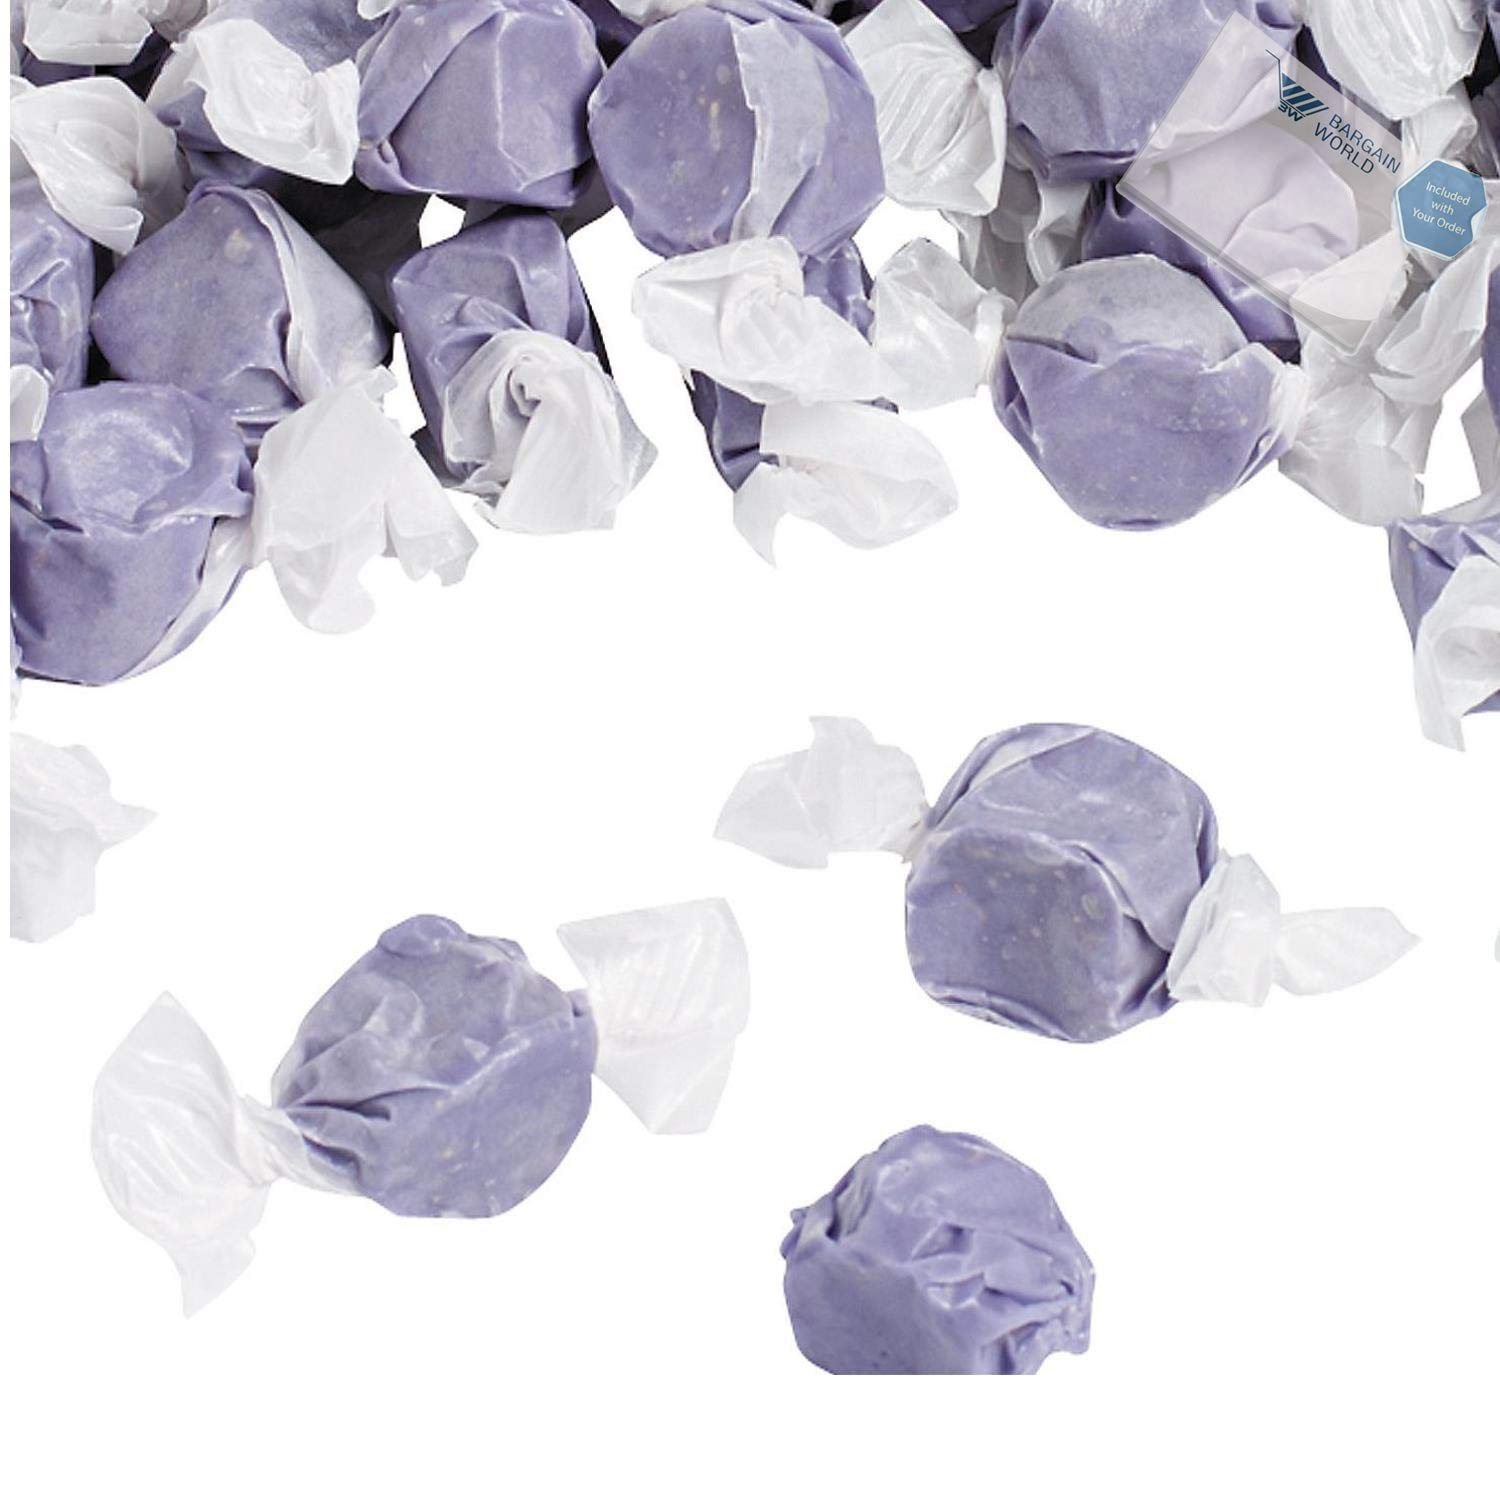 Bargain World Purple Salt Water Taffy (With Sticky Notes)